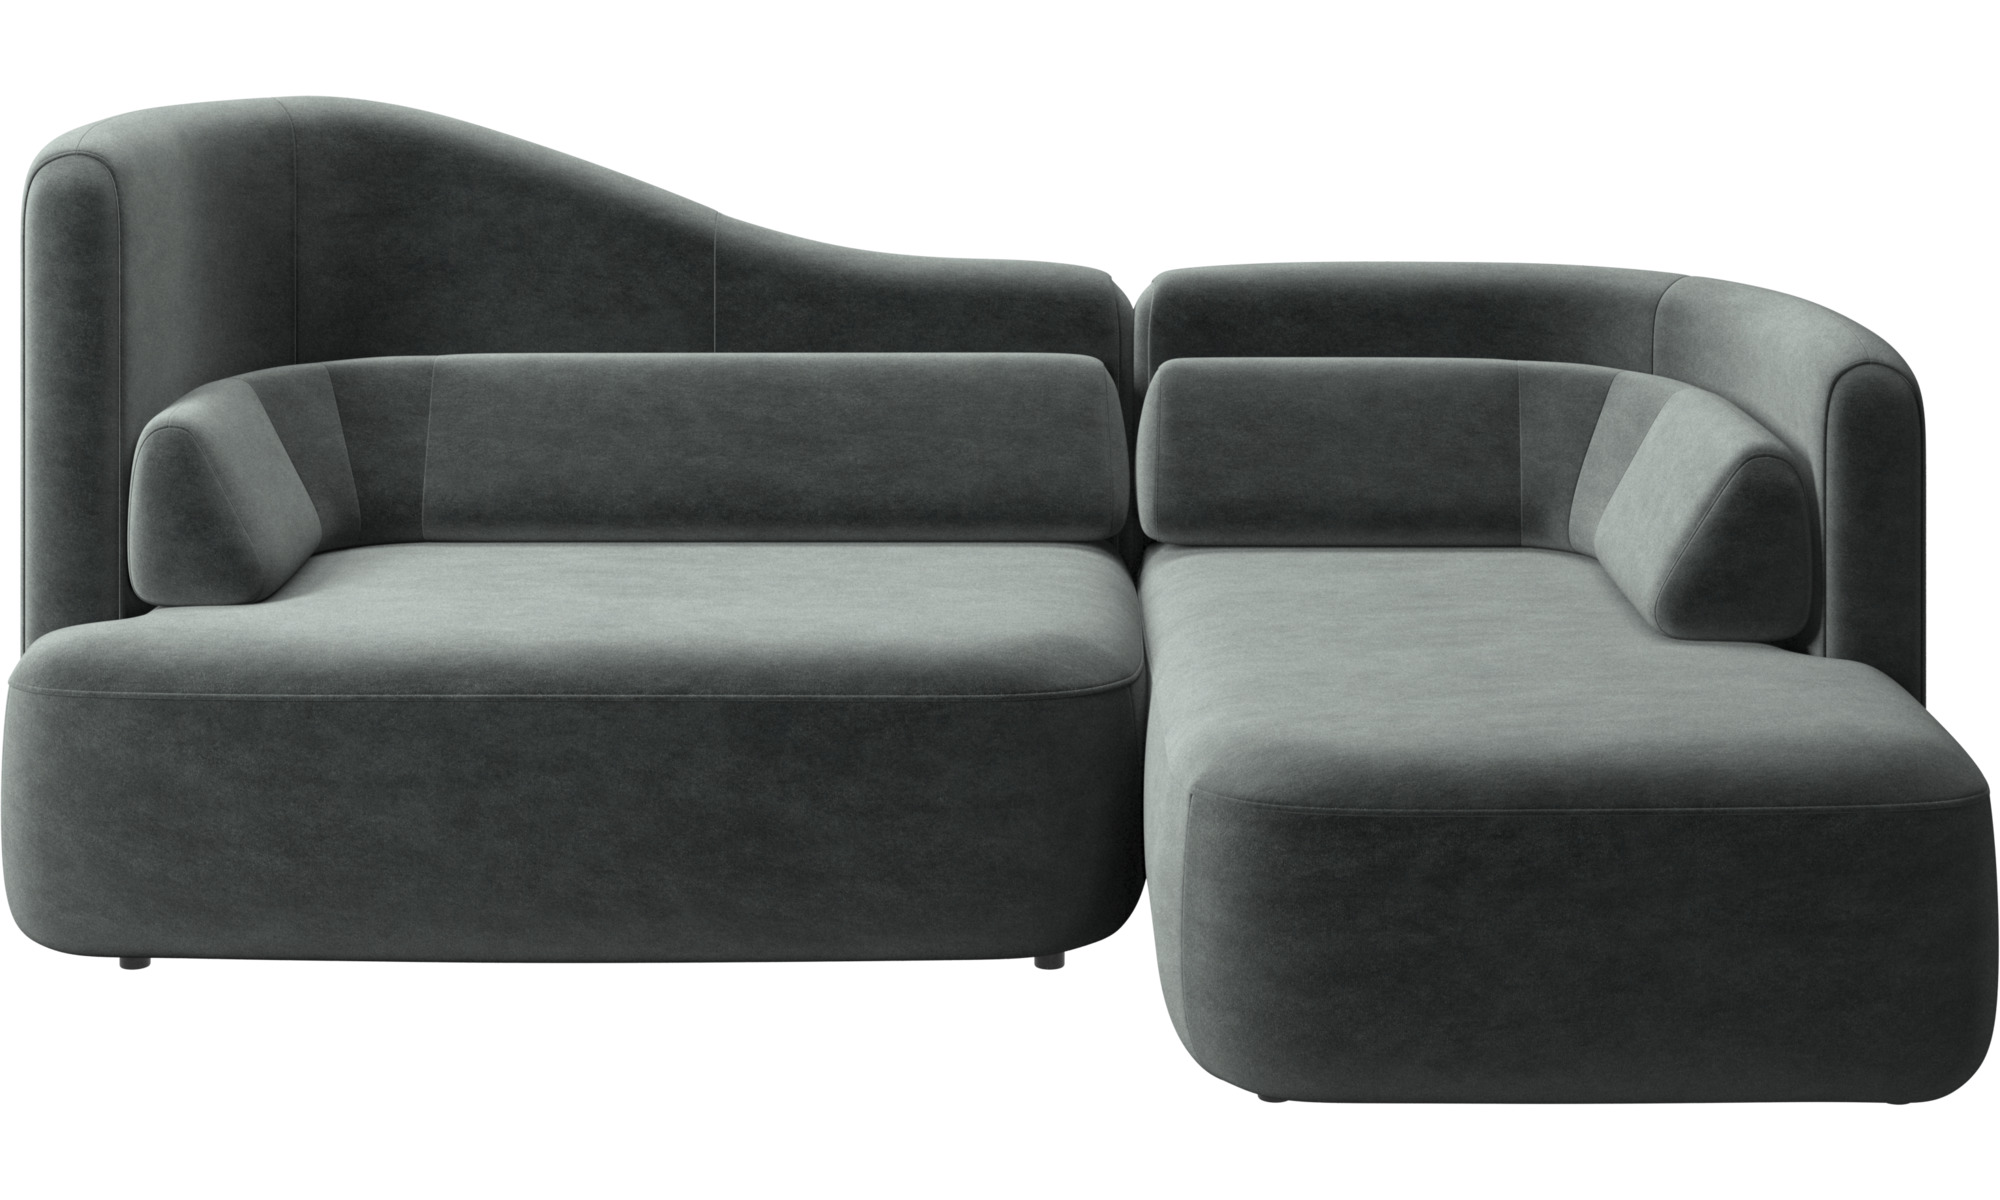 modern sectional sofas mississauga blue velvet sofa chairs ottawa model brabbu cgtrader - thesofa